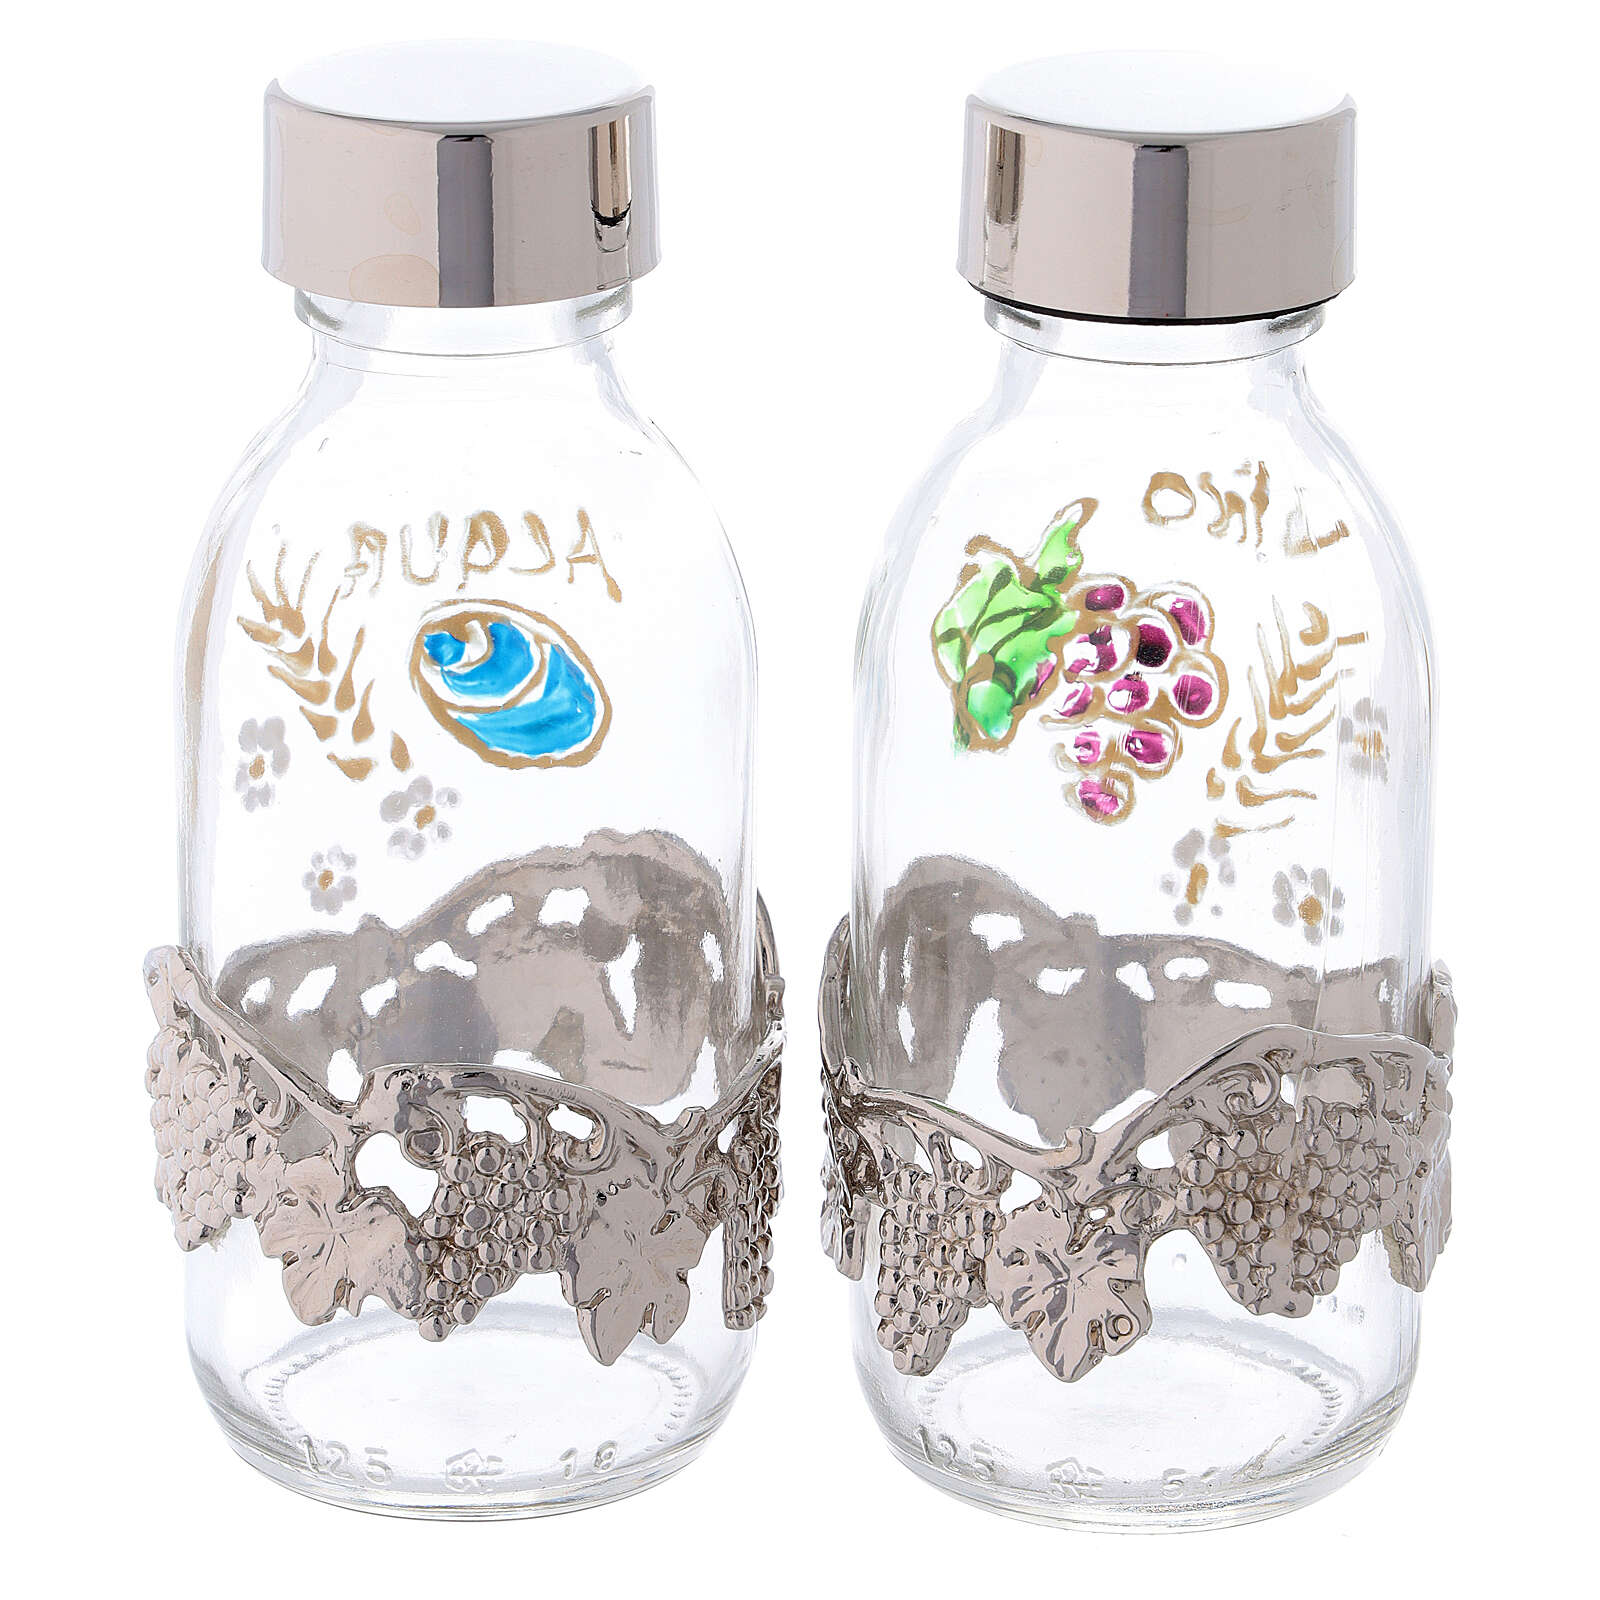 Bottles in glass with grapefruit decoration, silver tone 125 ml 4